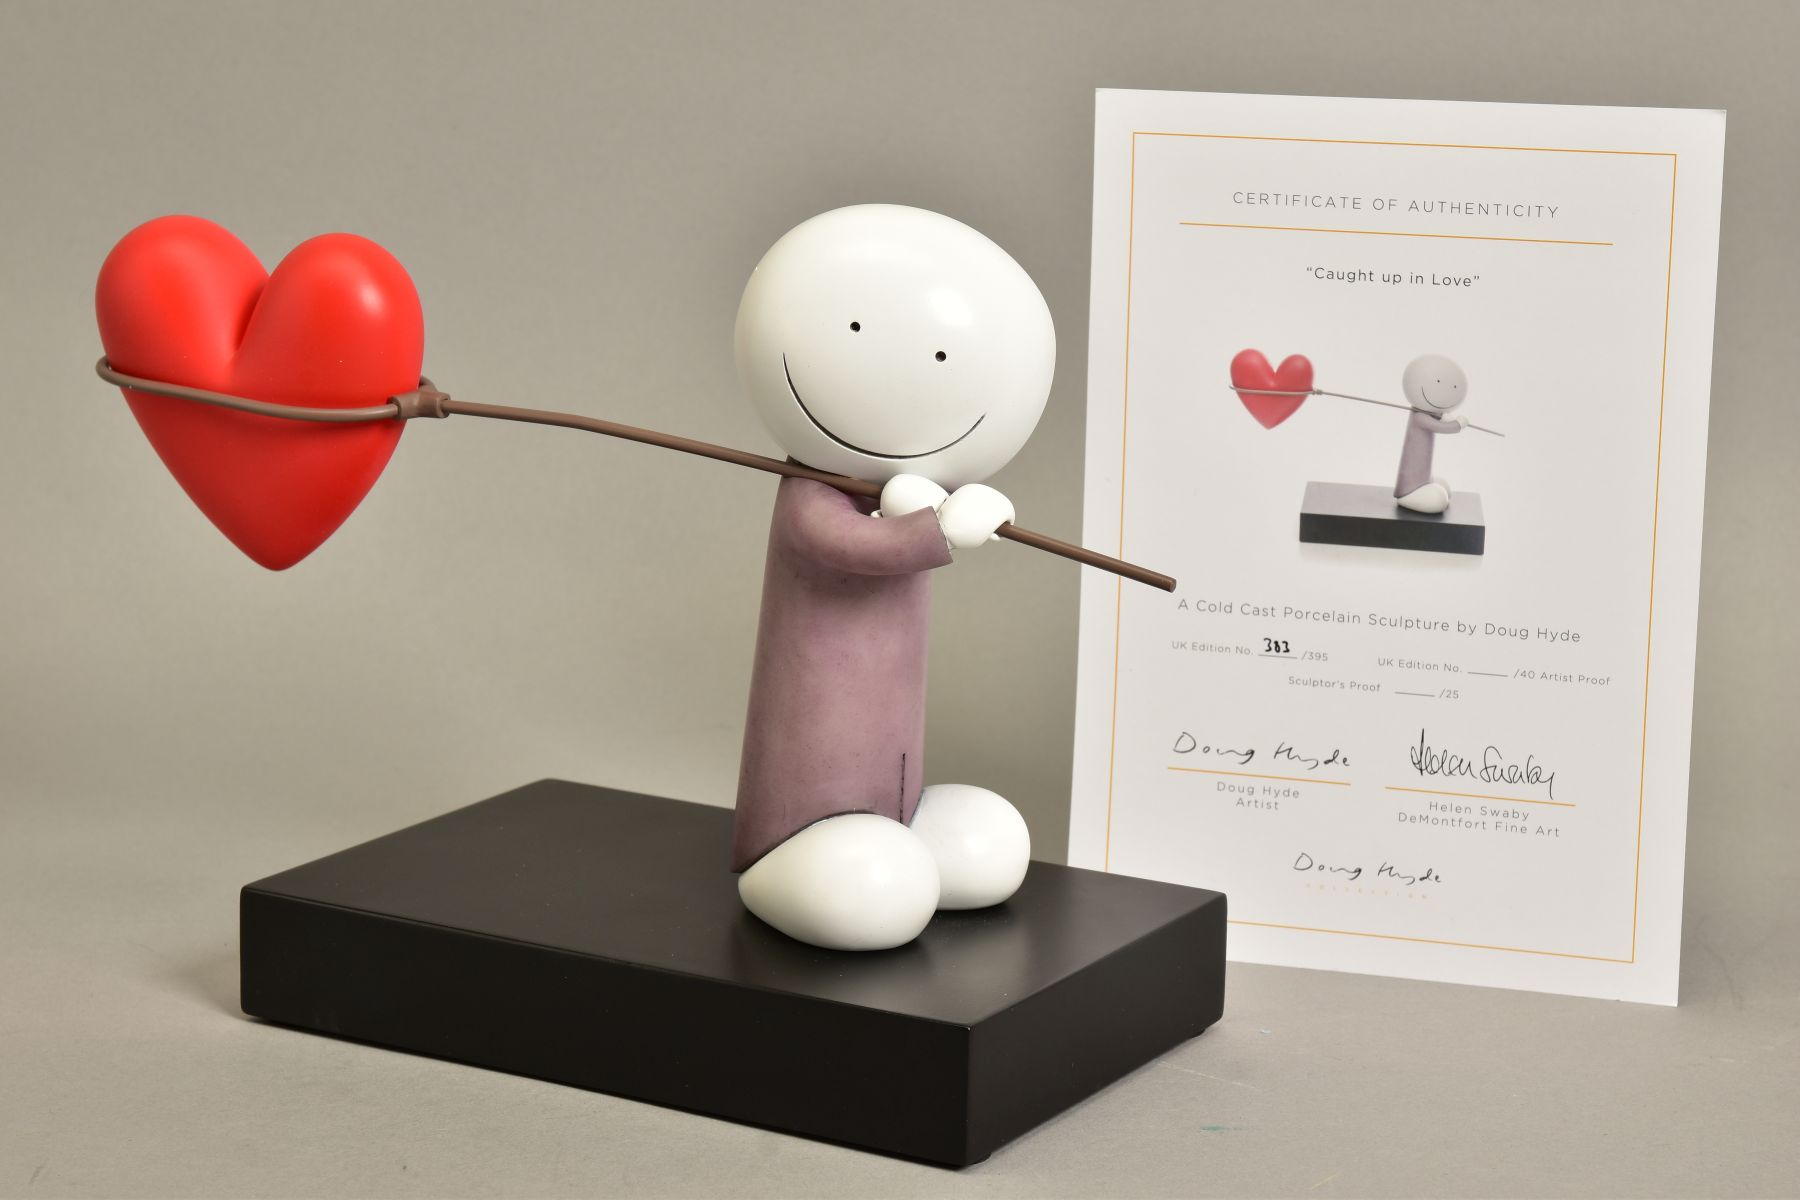 DOUG HYDE (BRITISH 1972) 'CAUGHT IN LOVE', a limited edition sculpture of a figure carrying a net